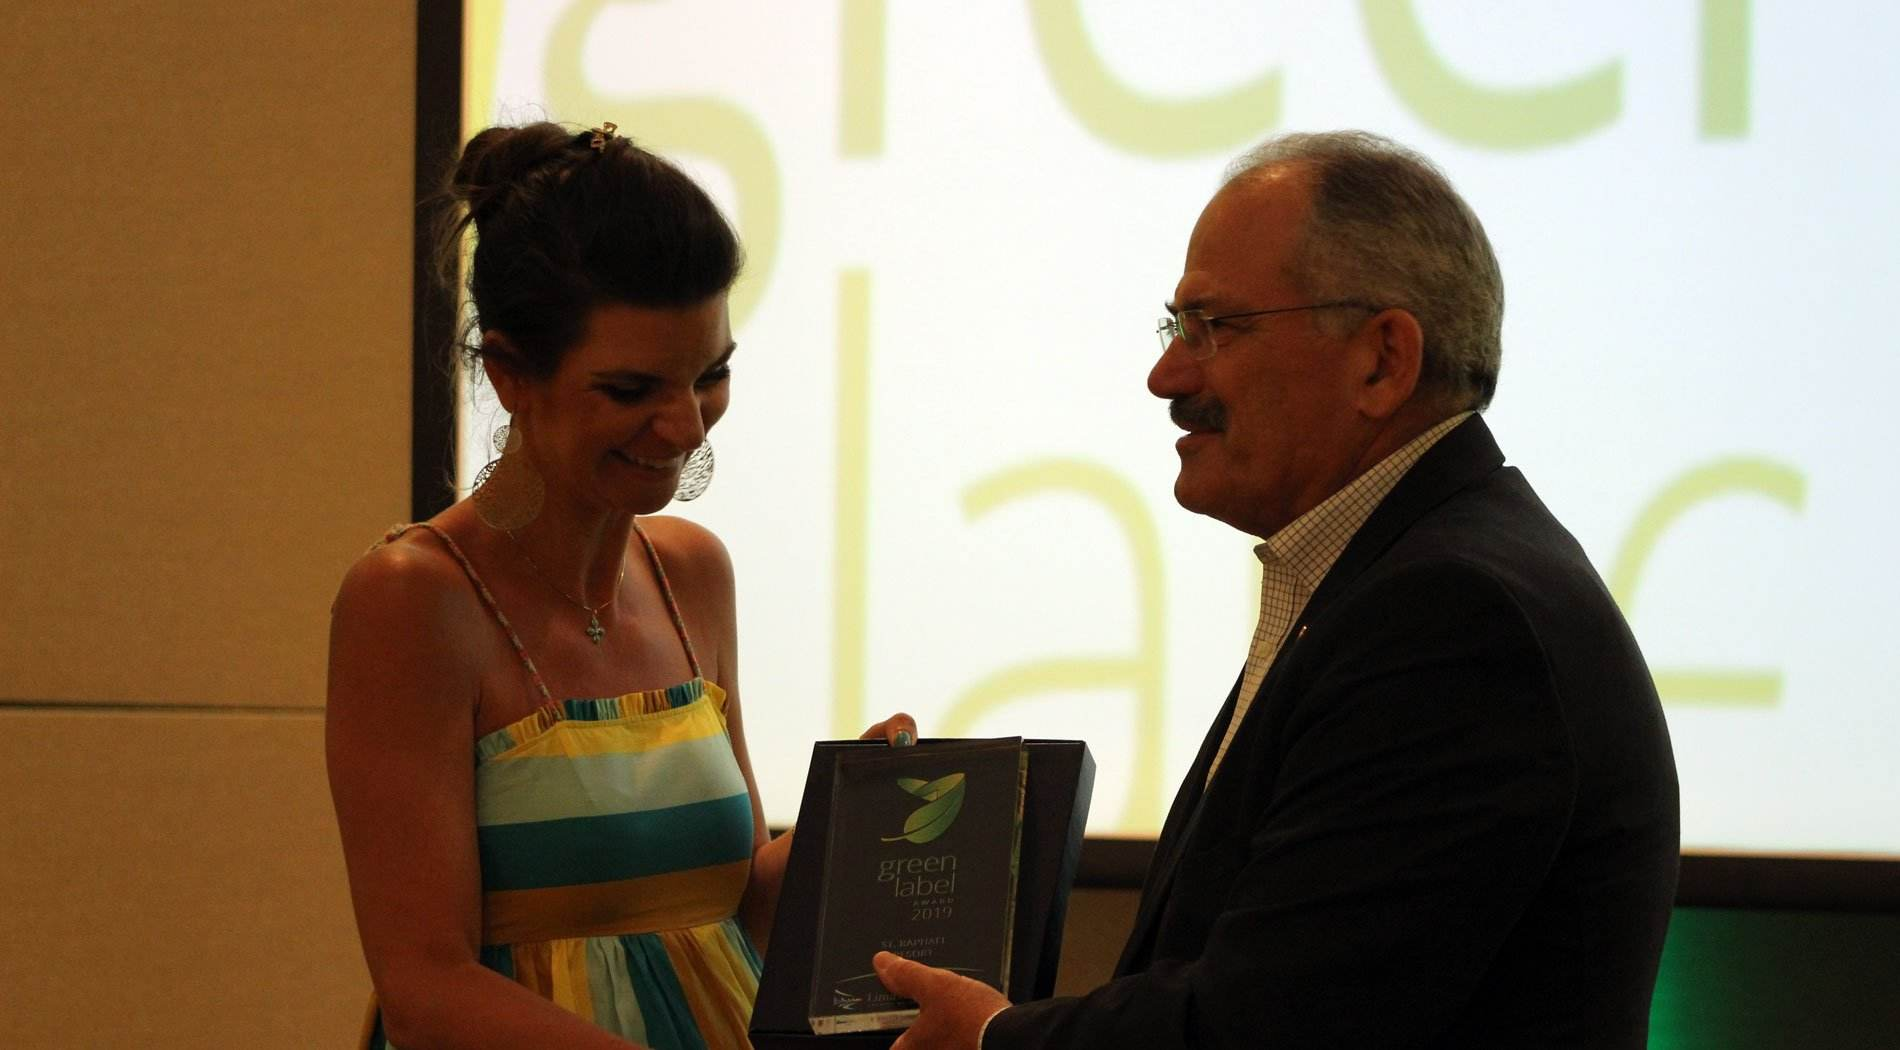 The Limassol Tourism Board organizes the Green Label Awards for Limassol Hotels